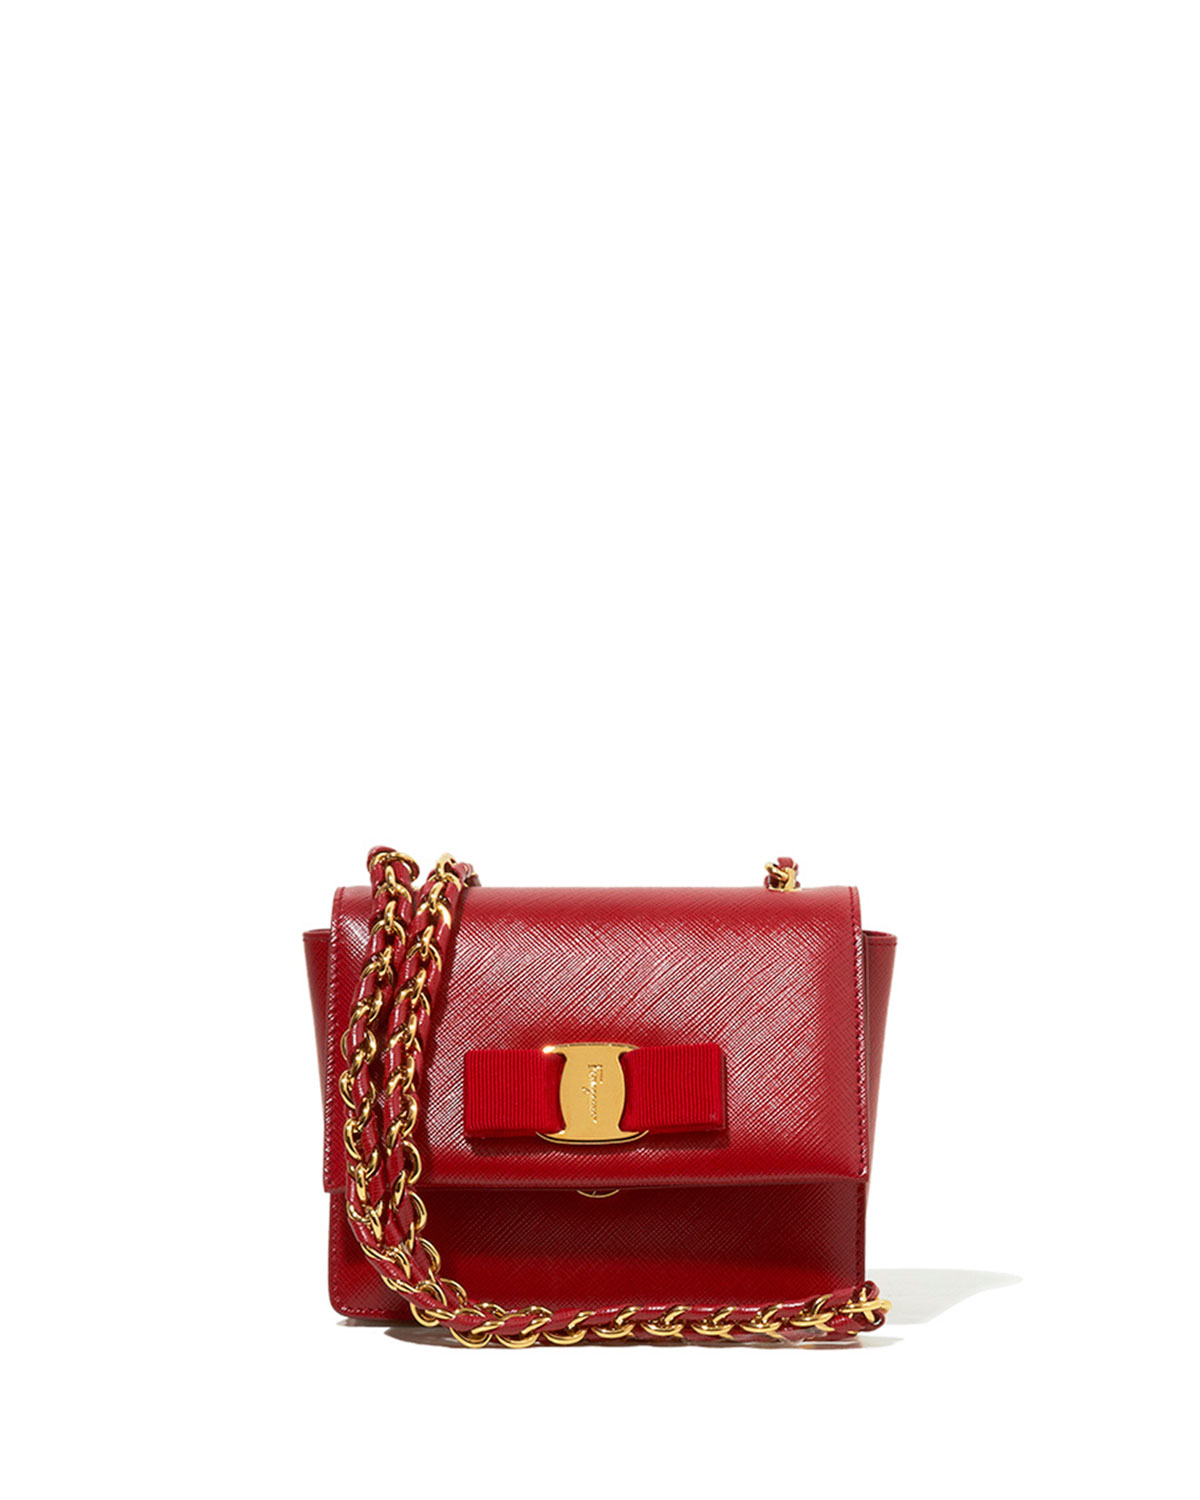 49efae959bd3 Salvatore Ferragamo Ginny Mini Saffiano Crossbody Bag